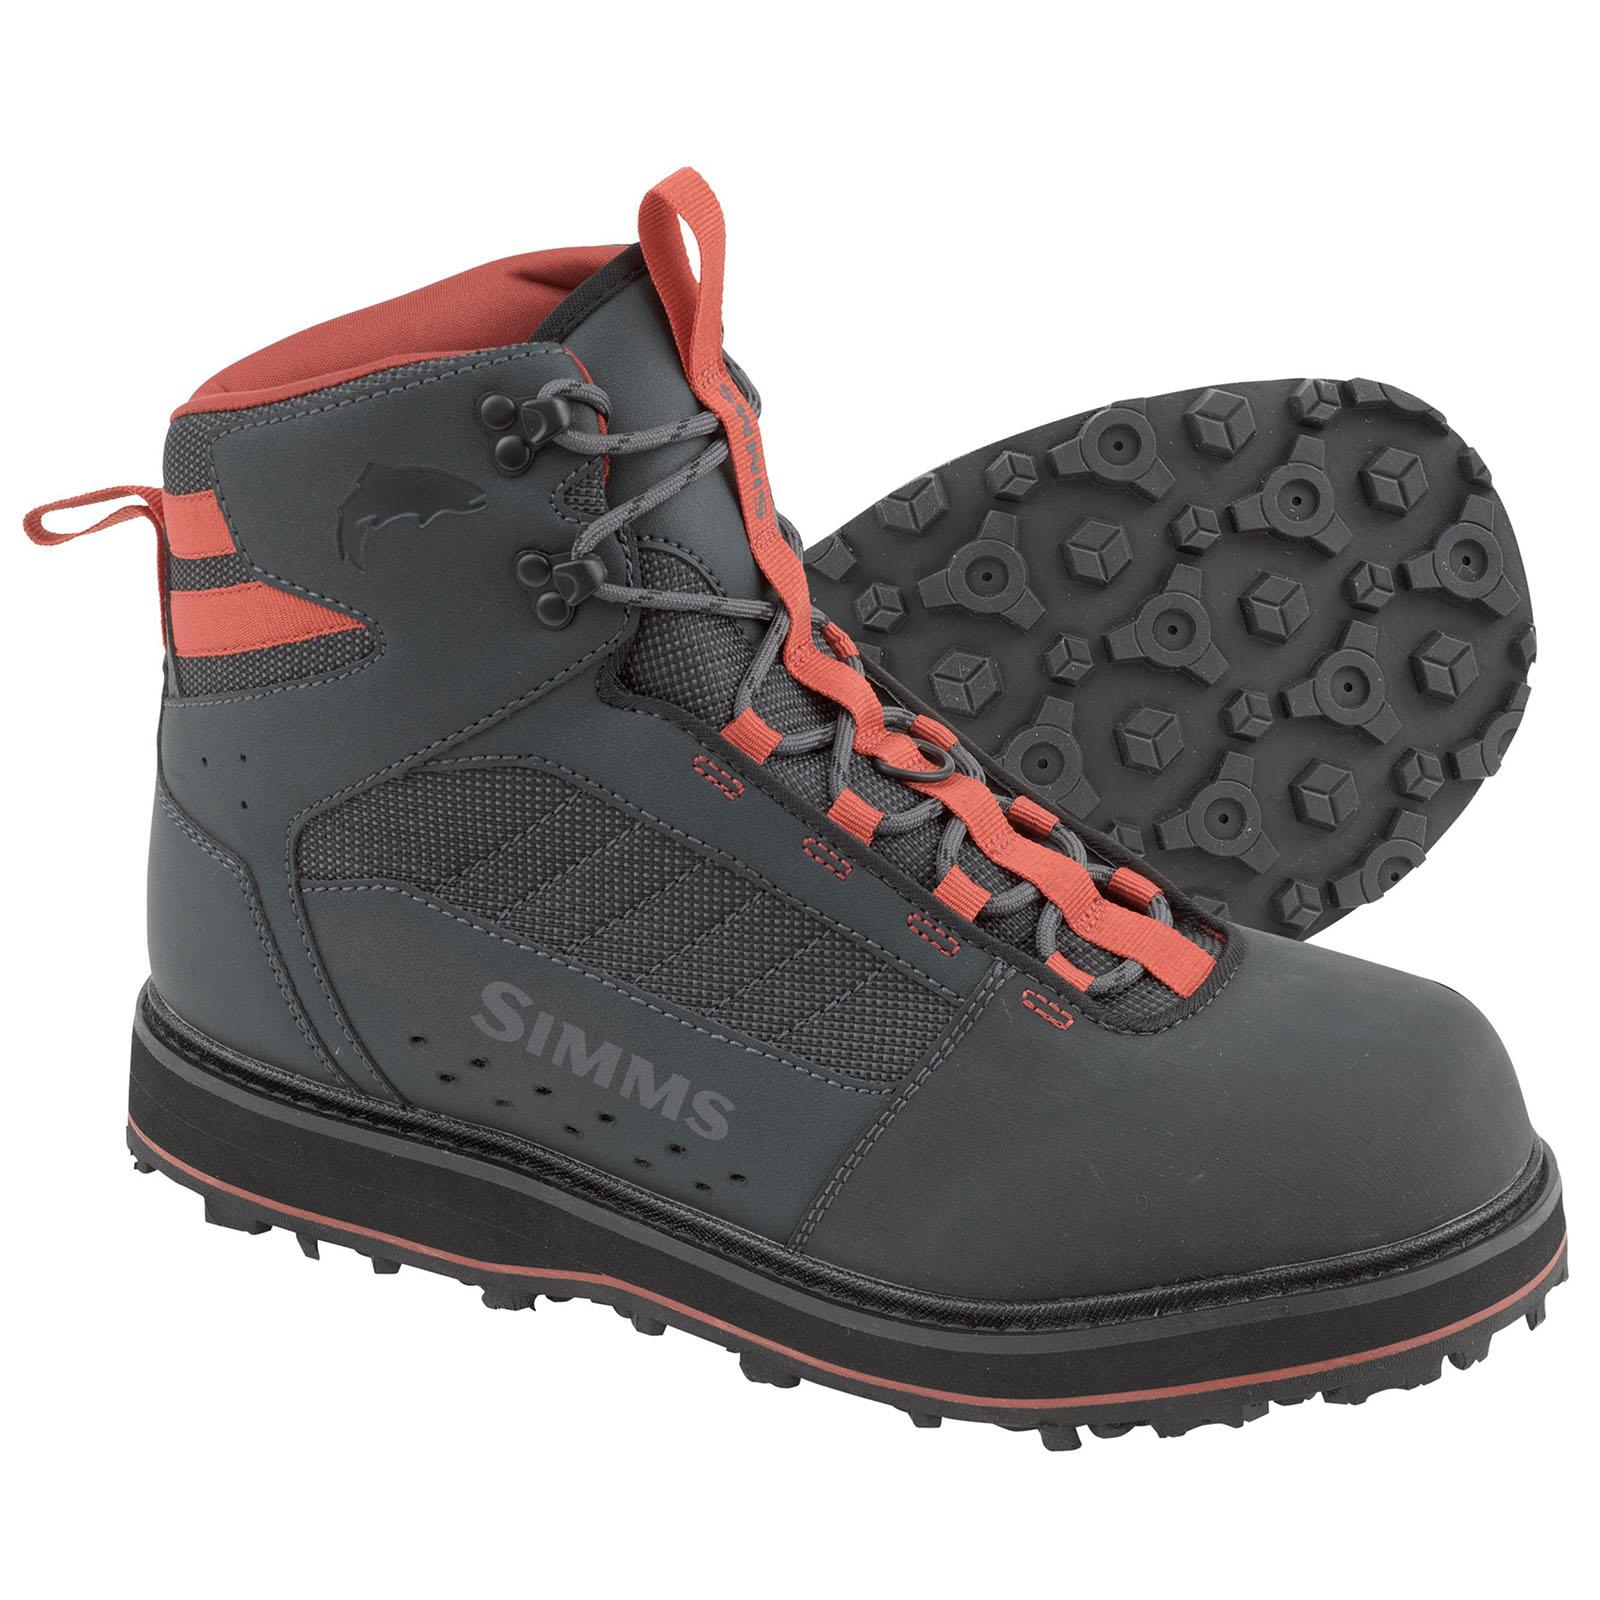 Simms Men's Tributary Wading Boot – Closeout 9; Carbon; Rubber